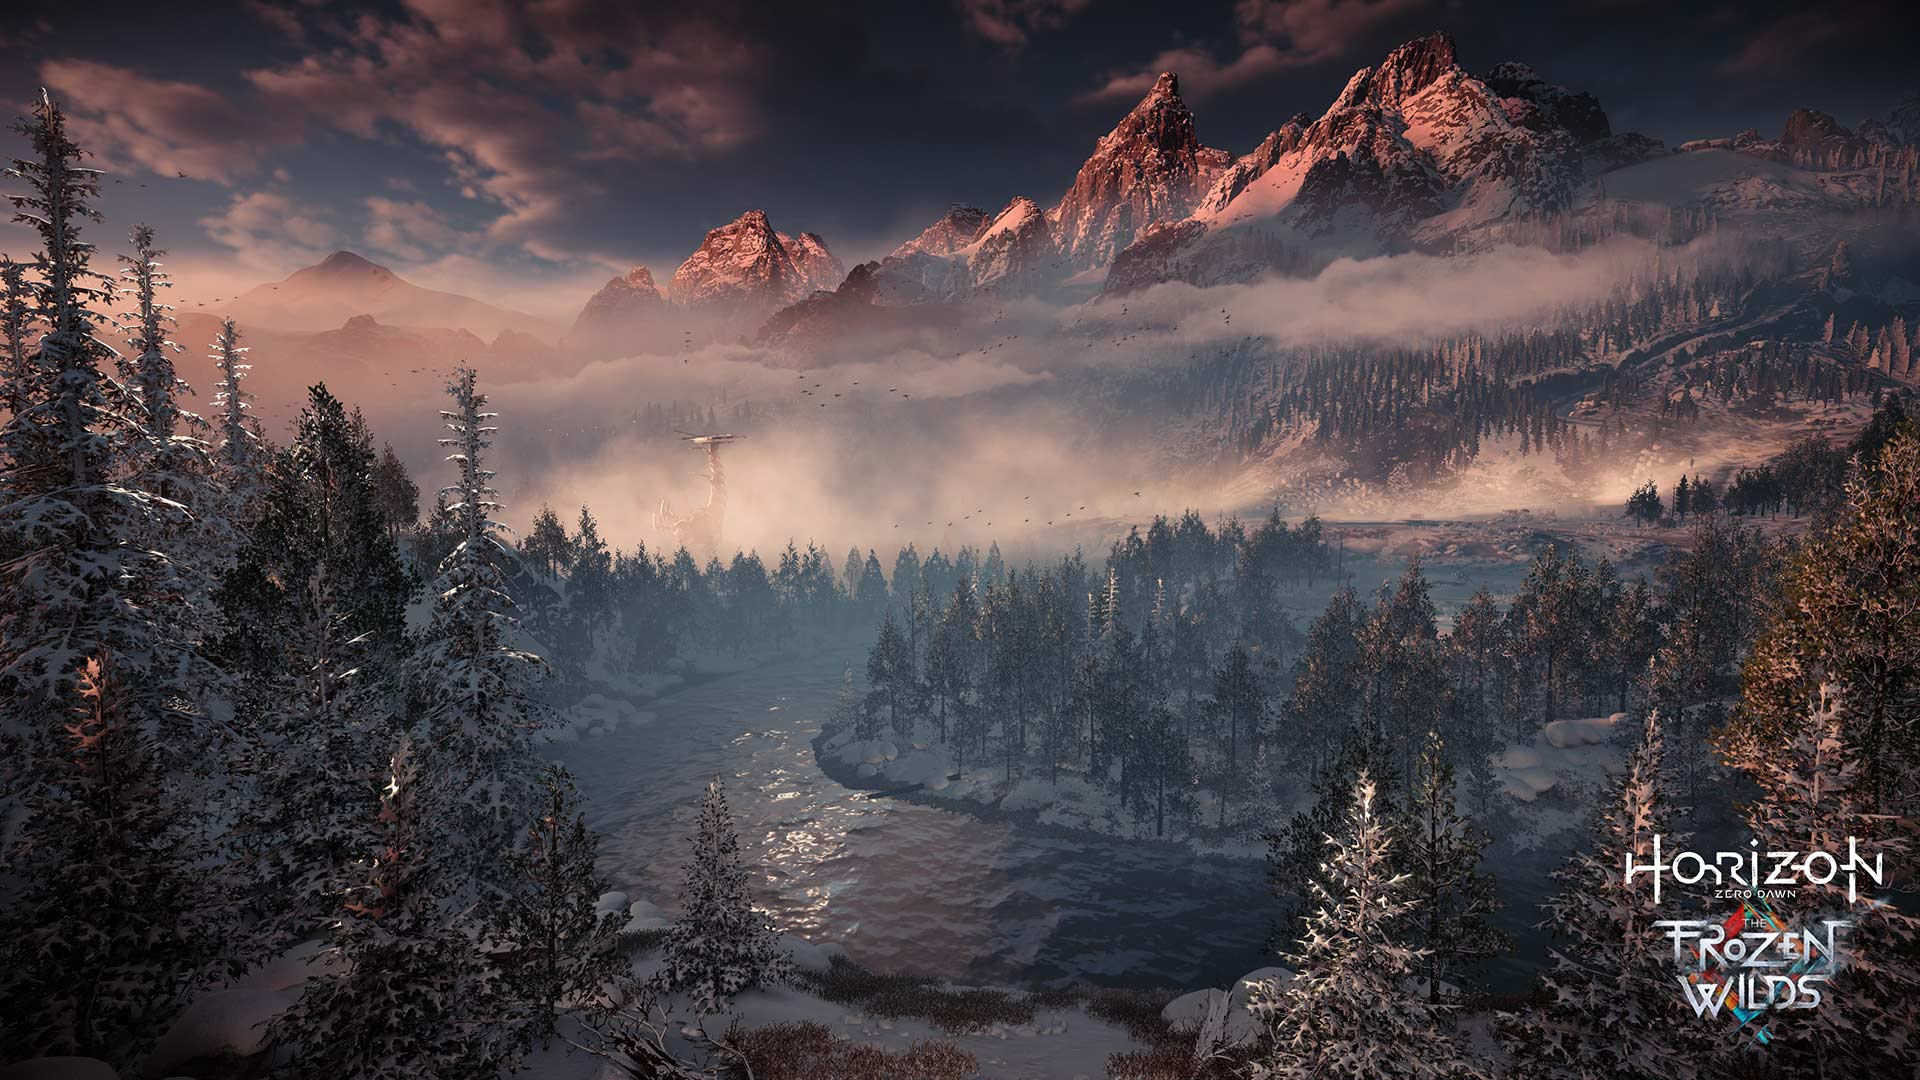 Horizon Zero Dawn The Frozen Wilds On Ps4 Official Playstation Network Card Rp 700000 Bundle 3362 Ratings